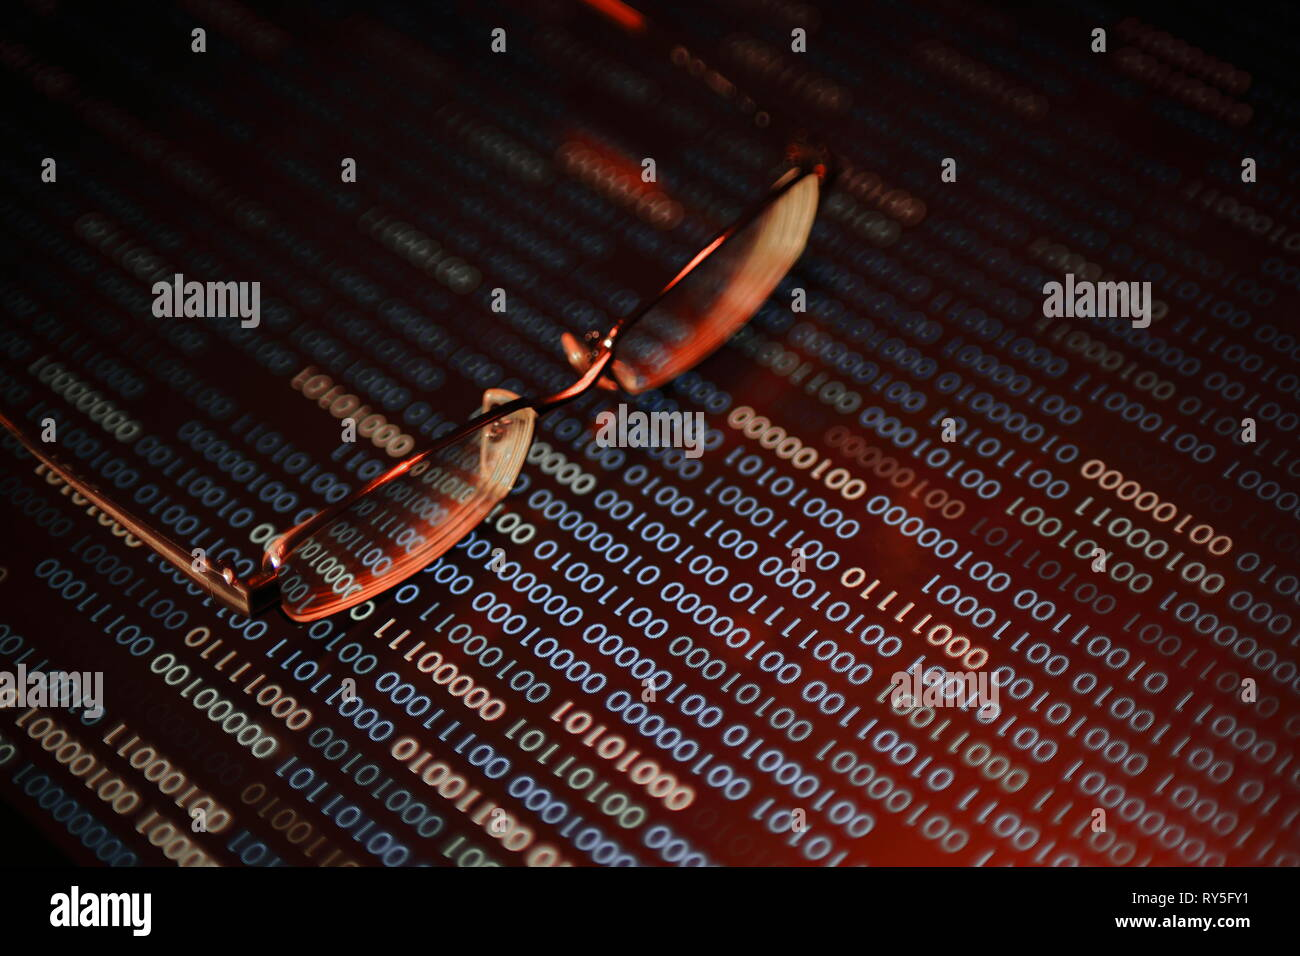 computer hacker. red dangerous code breach into red binary code with glasses place over led panel. virus, cyber threat and computer internet system fa - Stock Image